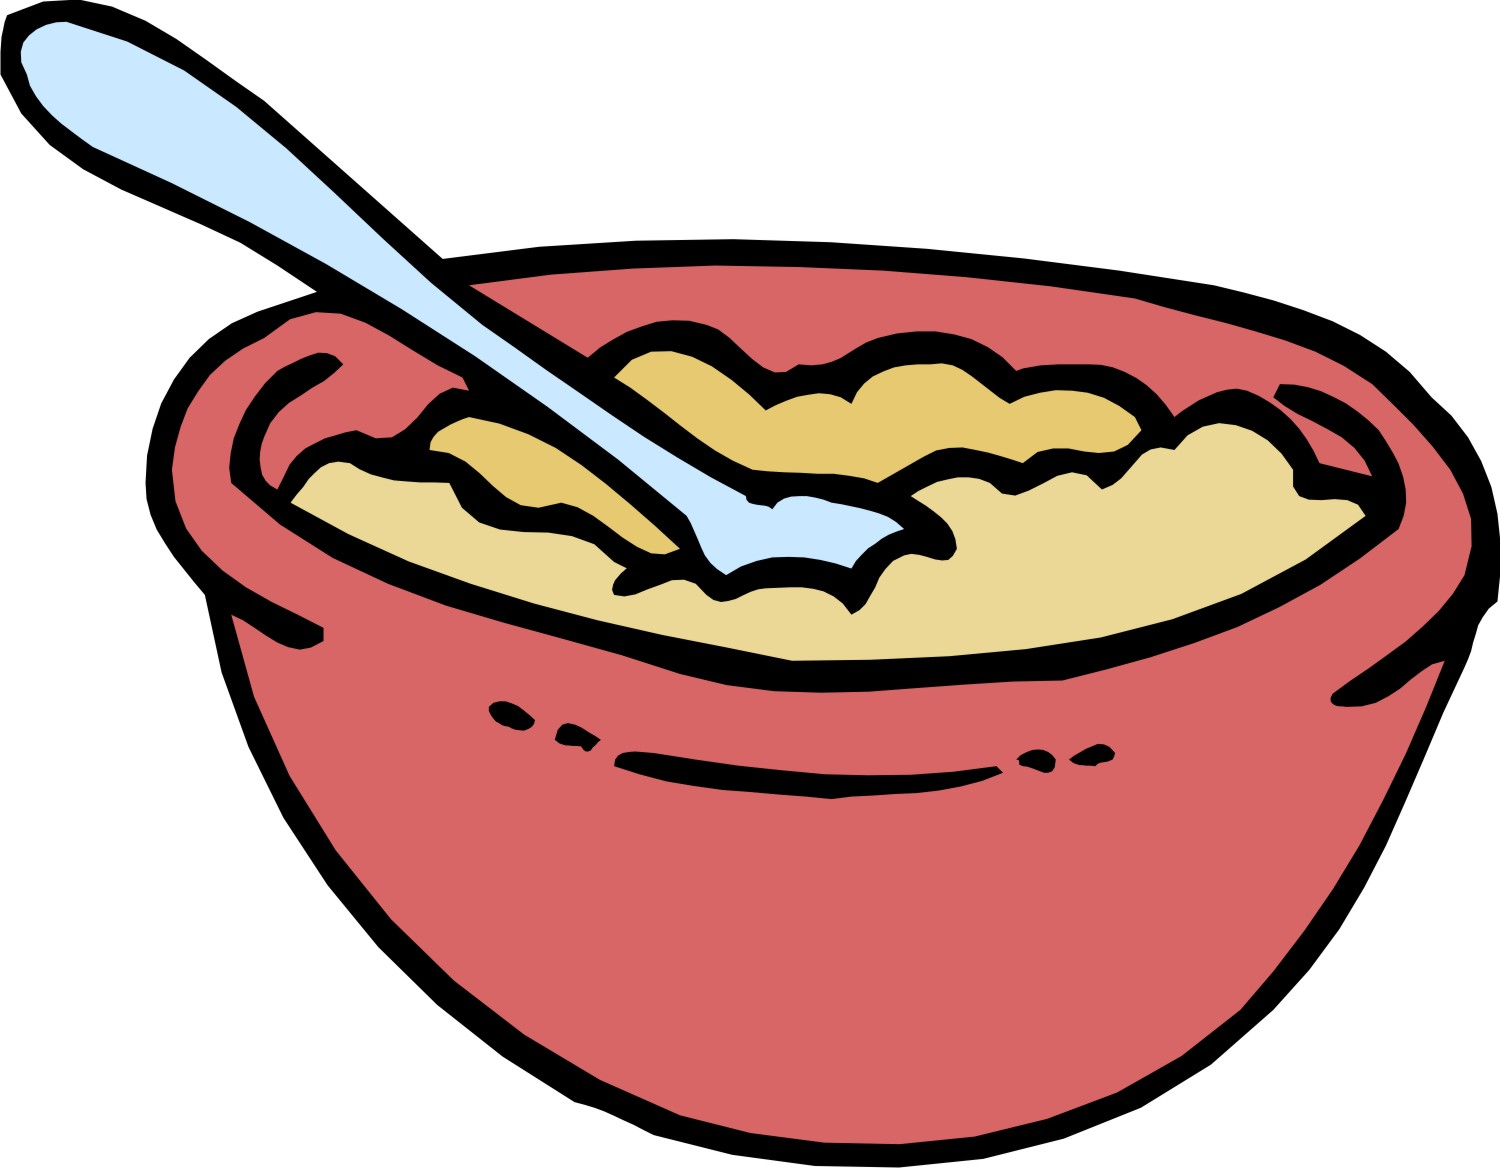 Cartoon Cereal Bowl - Cliparts.co